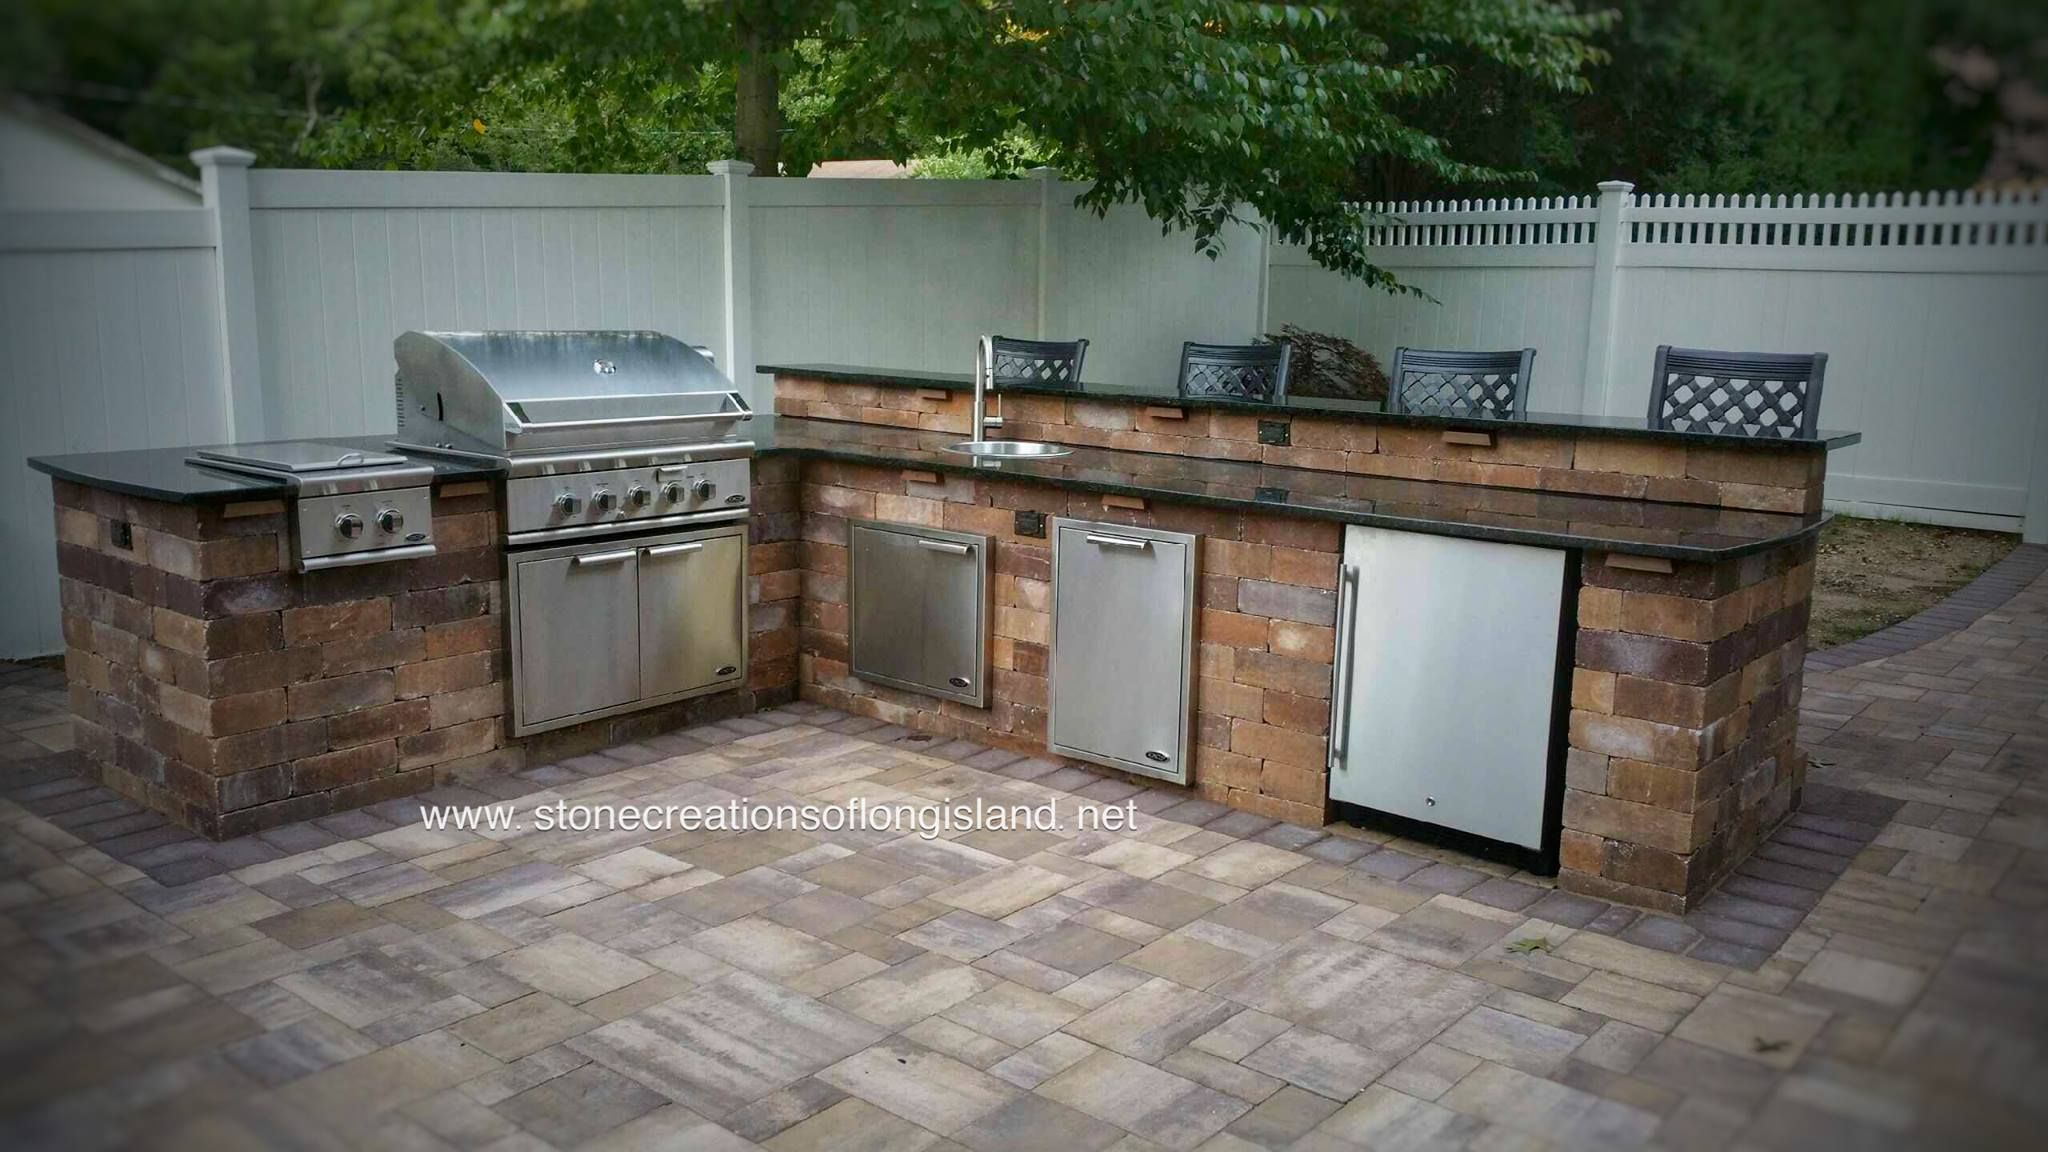 Who Wouldn T Want To Grill Up A Feast In This Outdoor Kitchen Put All The Amenities Outdoor Kitchen Island Outdoor Kitchen Kitchen Island With Sink